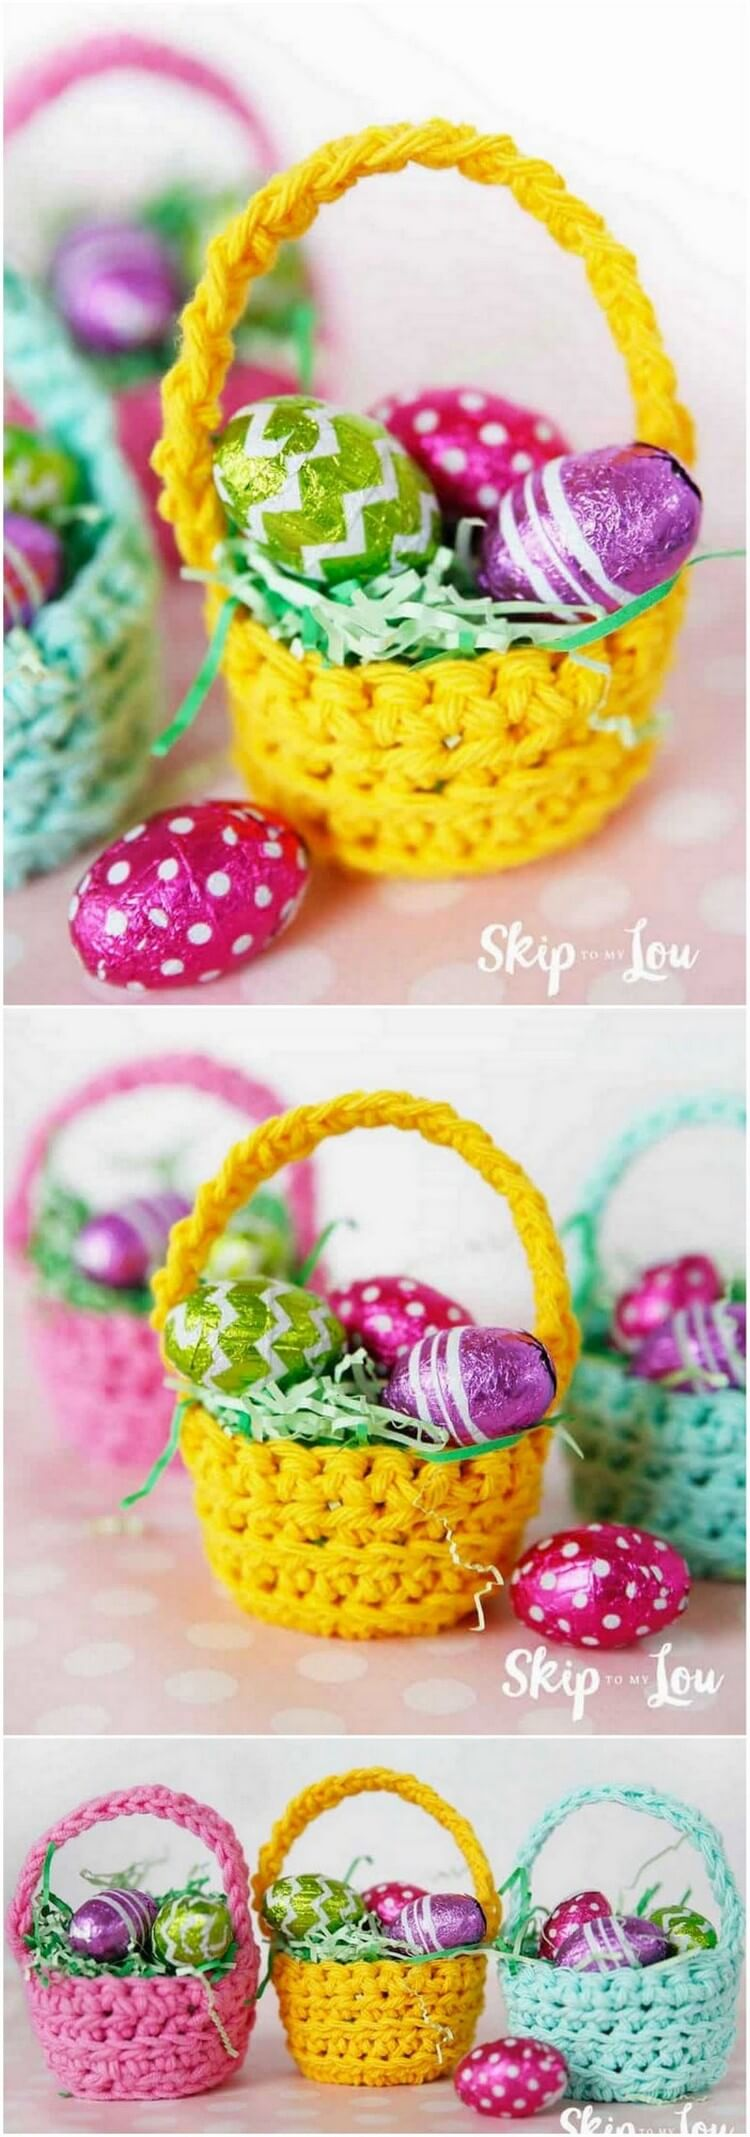 Crochet Basket Pattern (49)